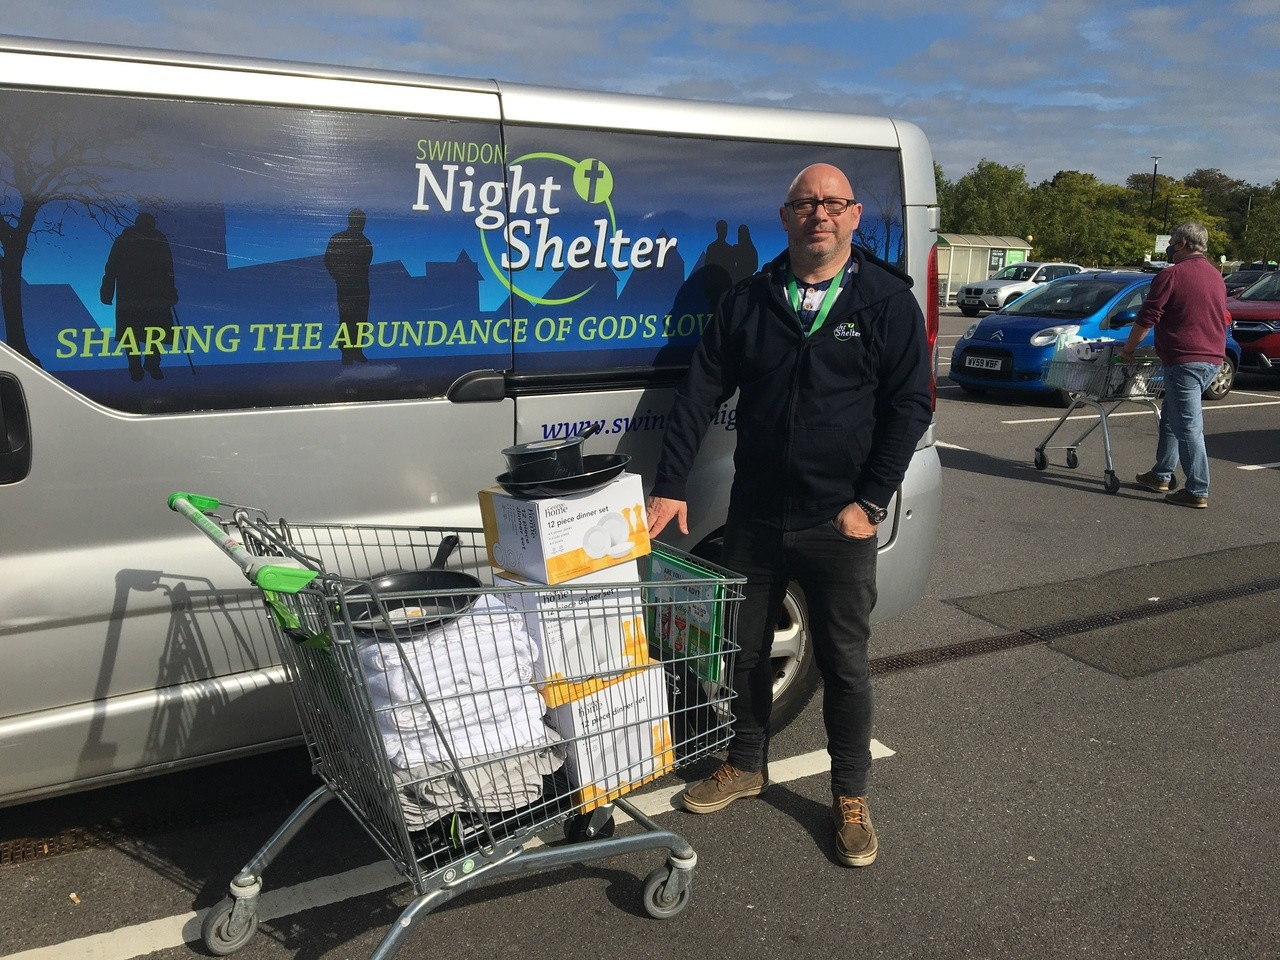 Supporting Swindon Night Shelter | Asda Swindon Haydon